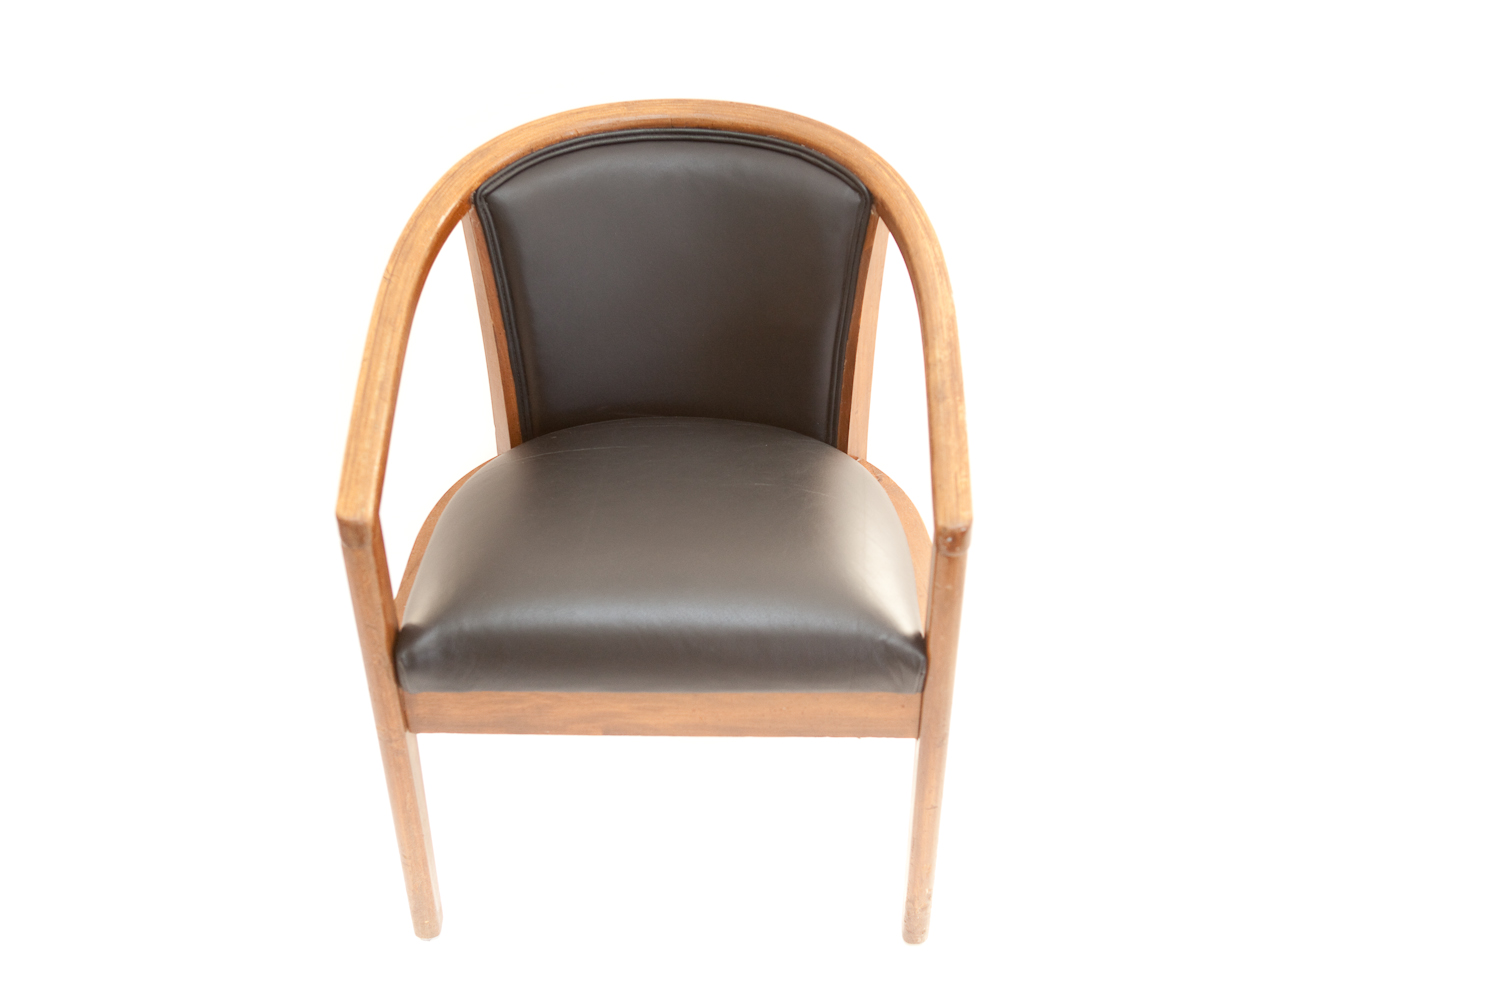 (S-030) THE NICOLINE CHAIR